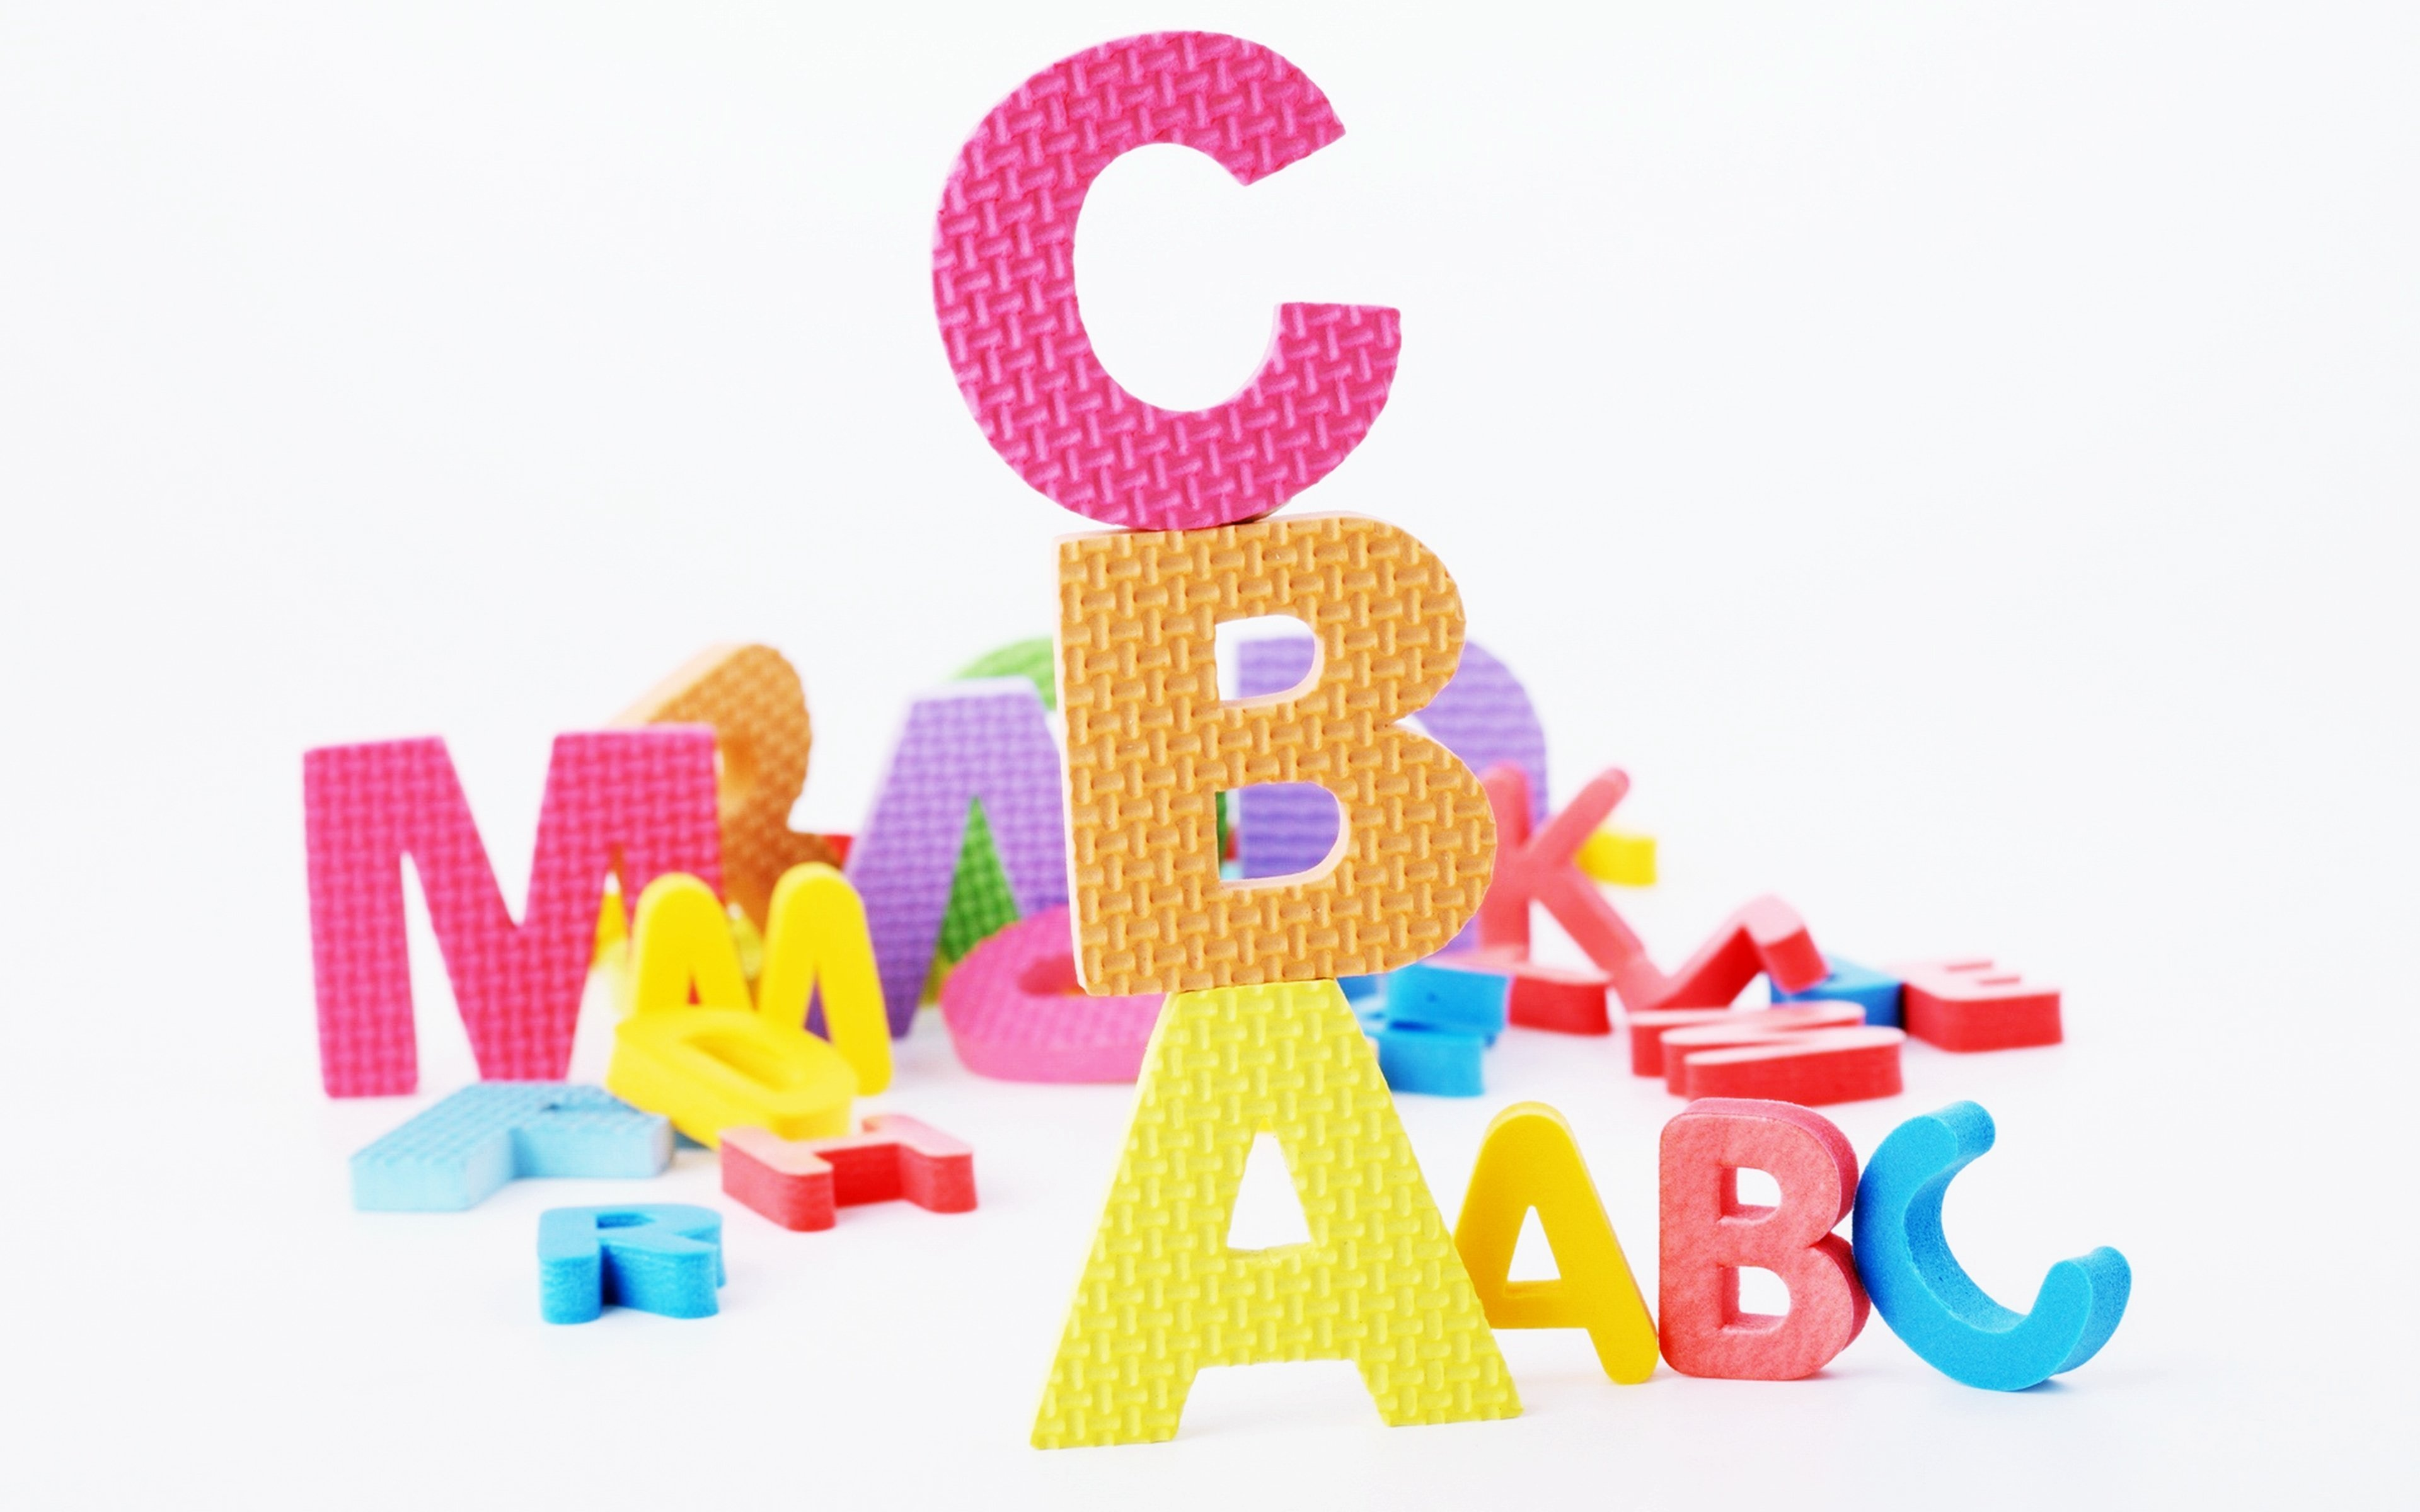 Abc Letters Alphabet Students Study Kids Children School Teacher Teach Wallpaper 3840x2400 661477 Wallpaperup